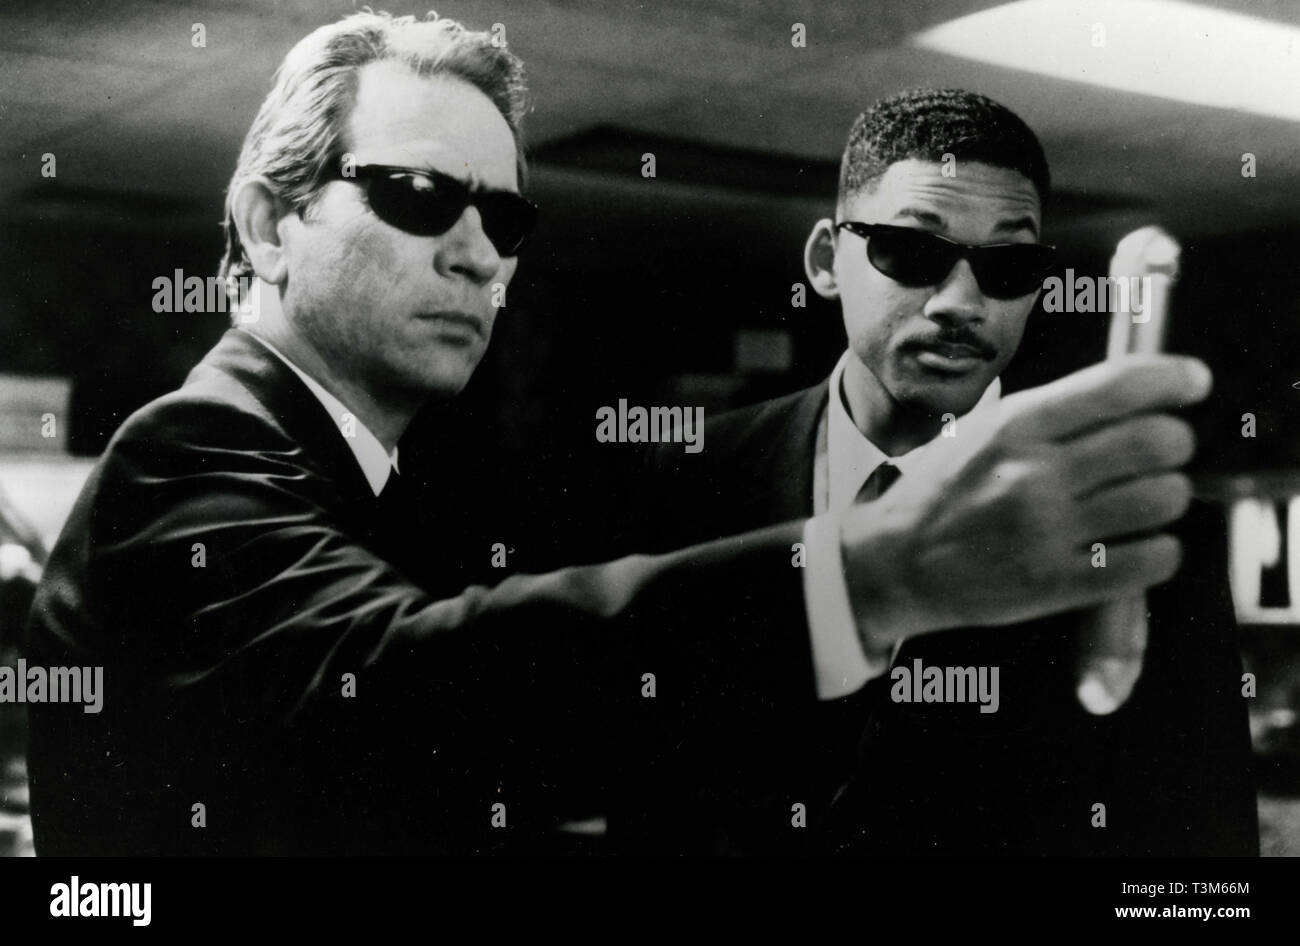 Tommy Lee Jones And Will Smith In The Movie Mib Men In Black